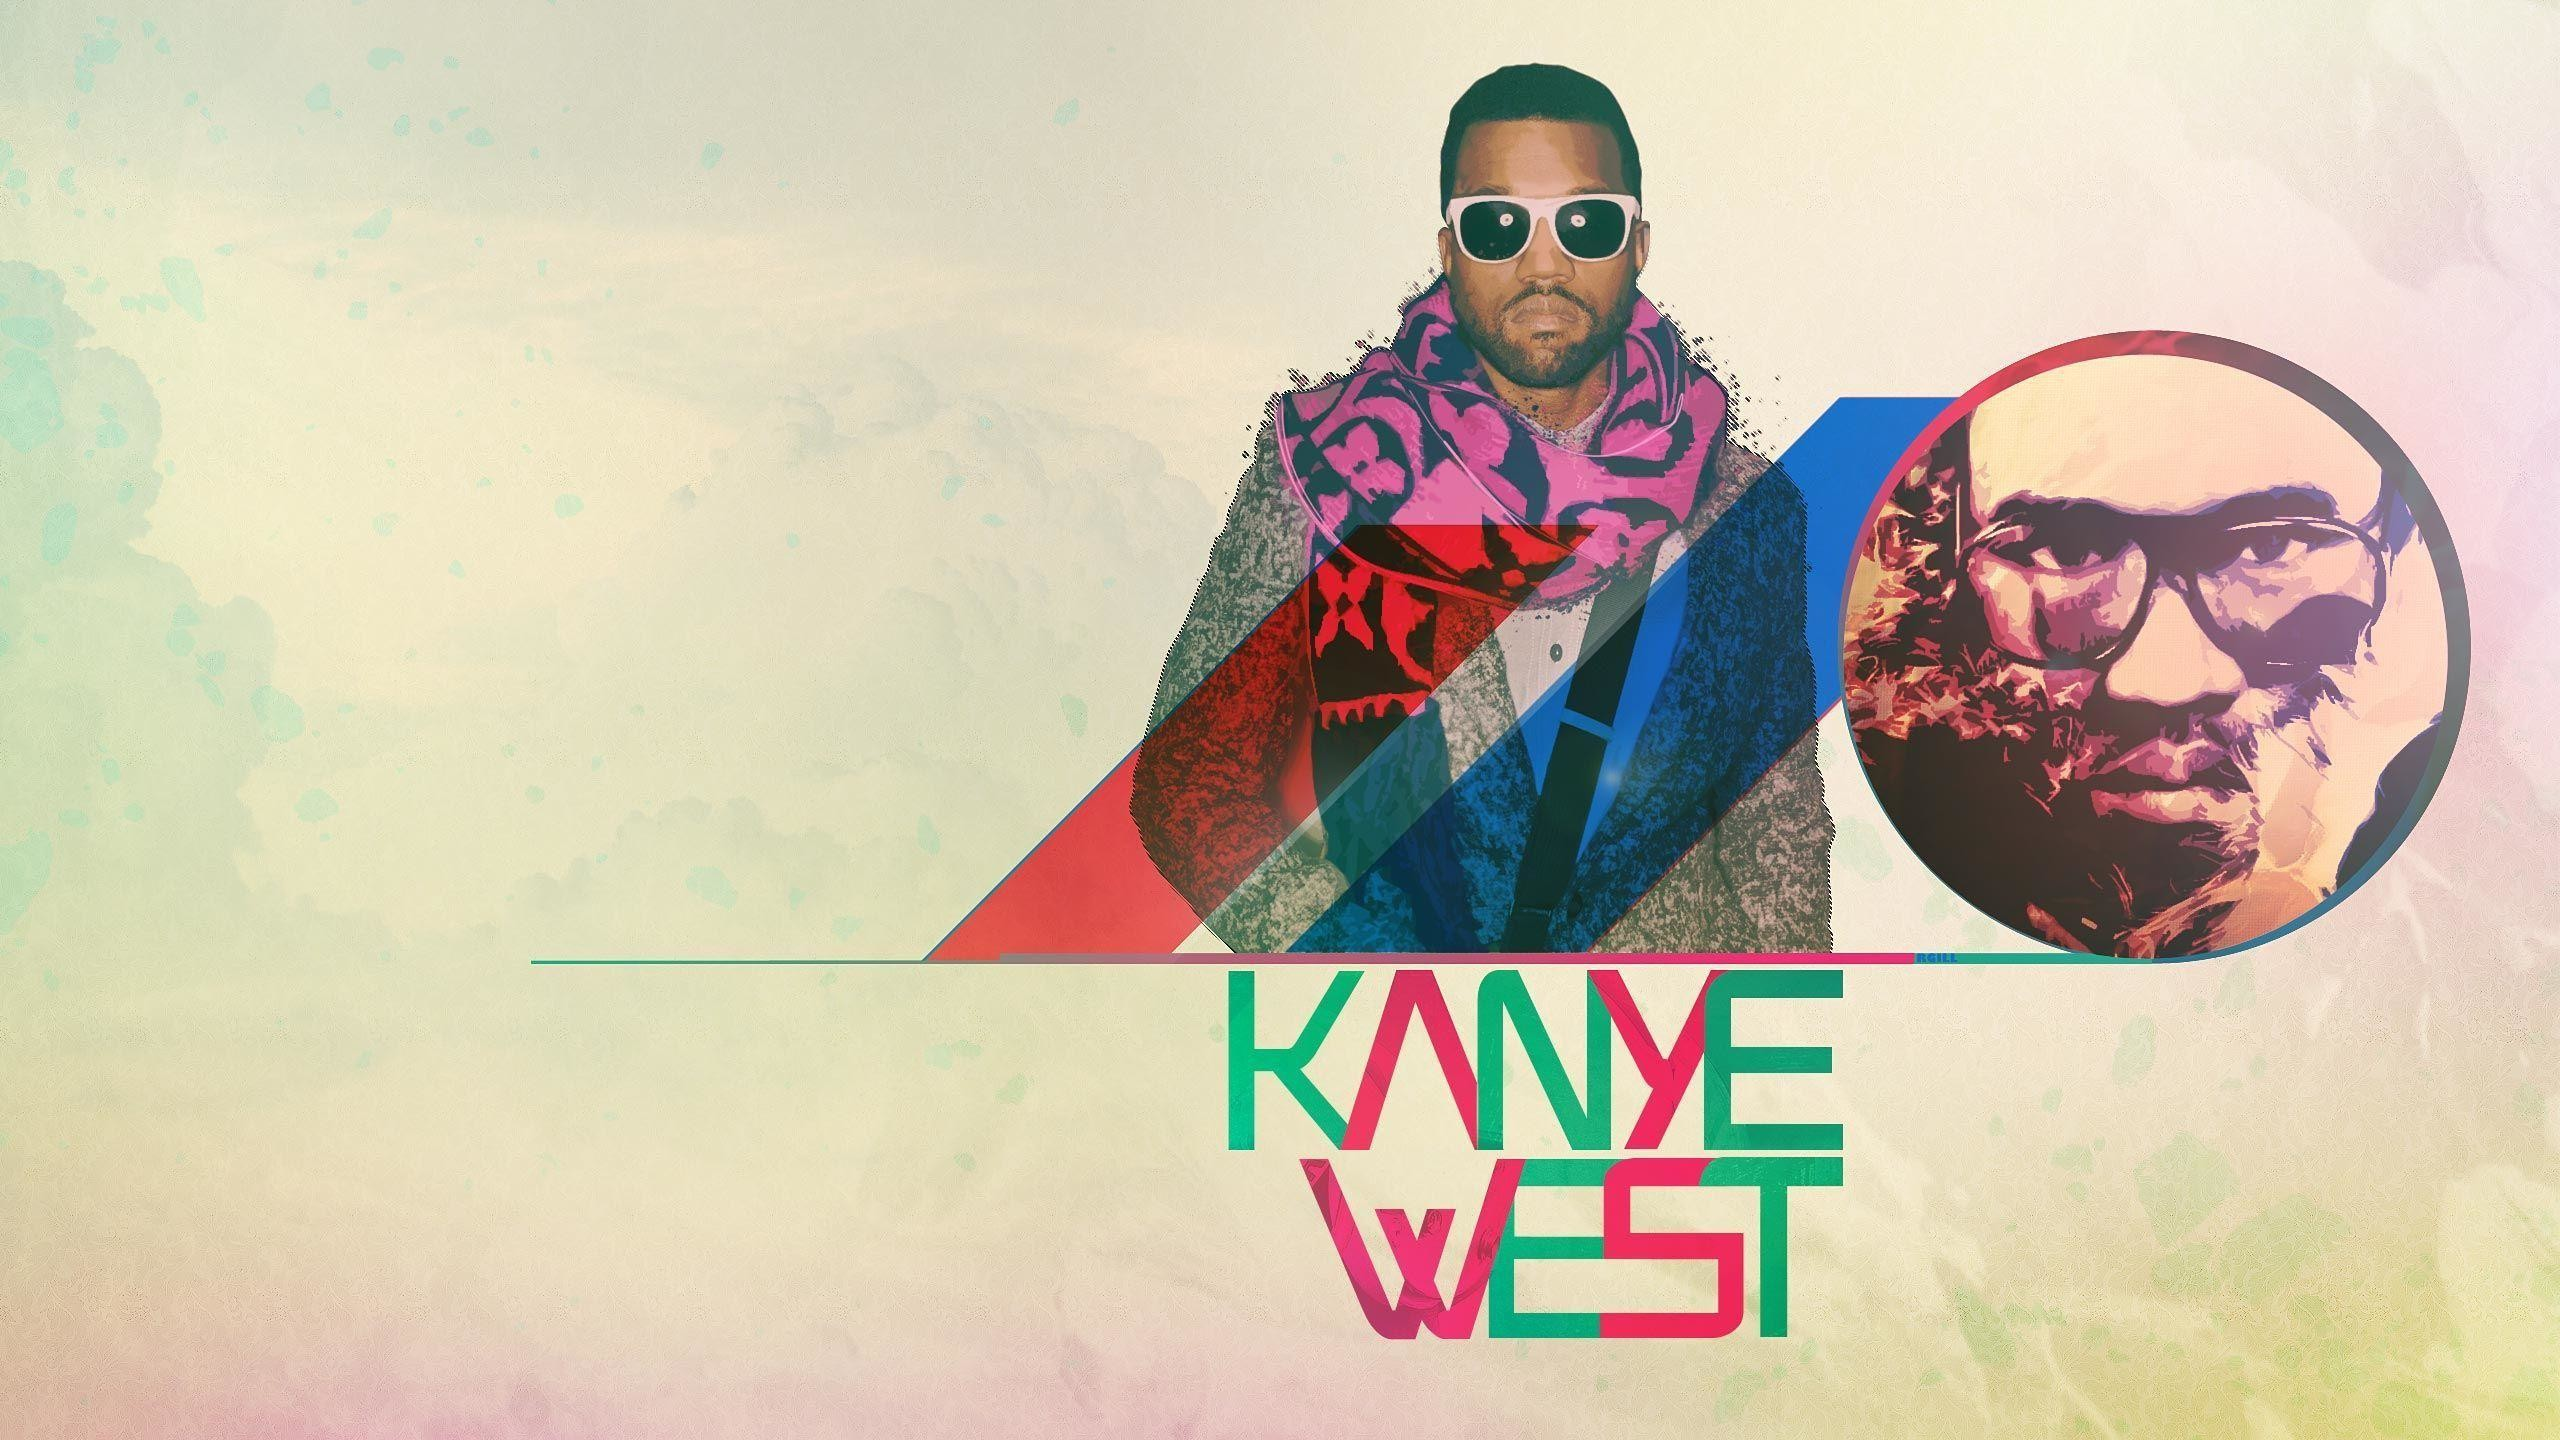 2560x1440 Kanye West Graduation Wallpapers - Wallpaper Cave